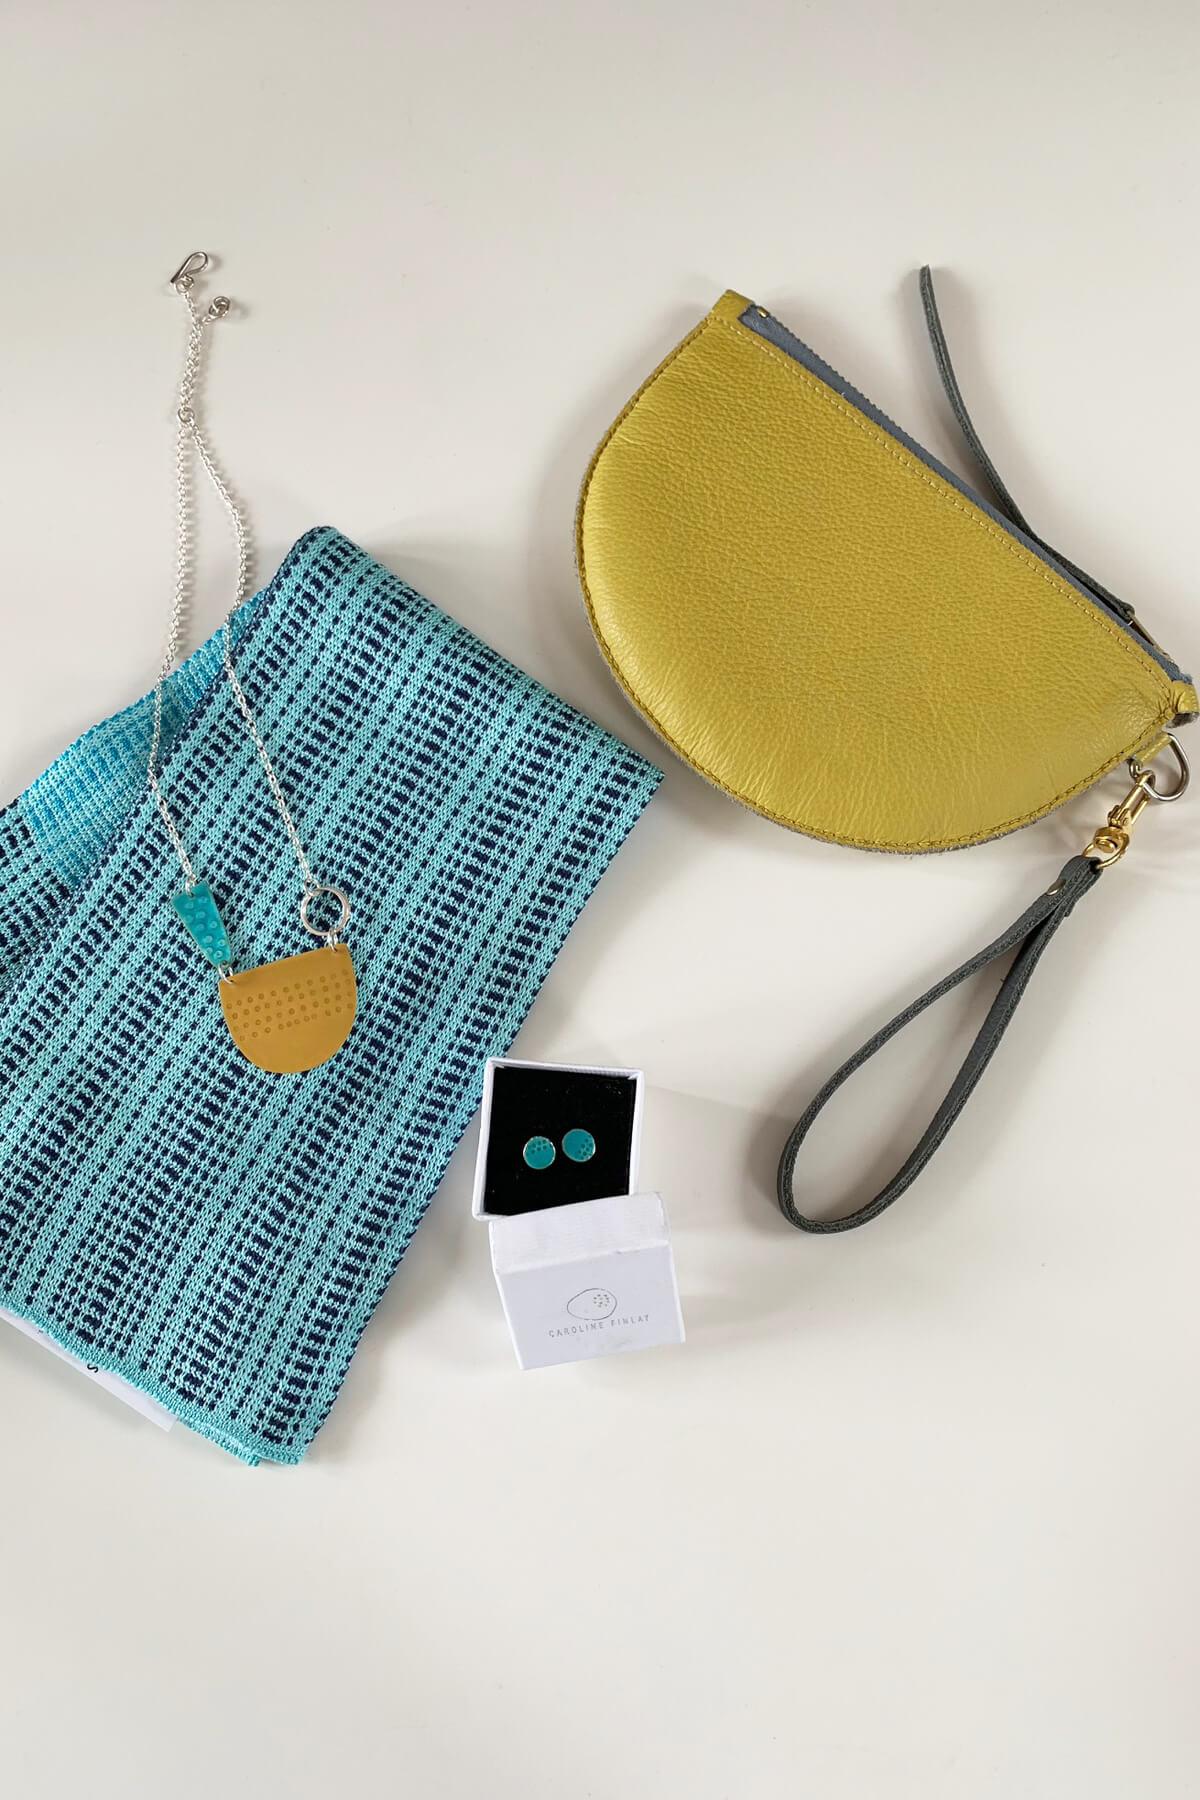 Earrings and necklace by Caroline Finlay. Wristlet purse by Jude Gove